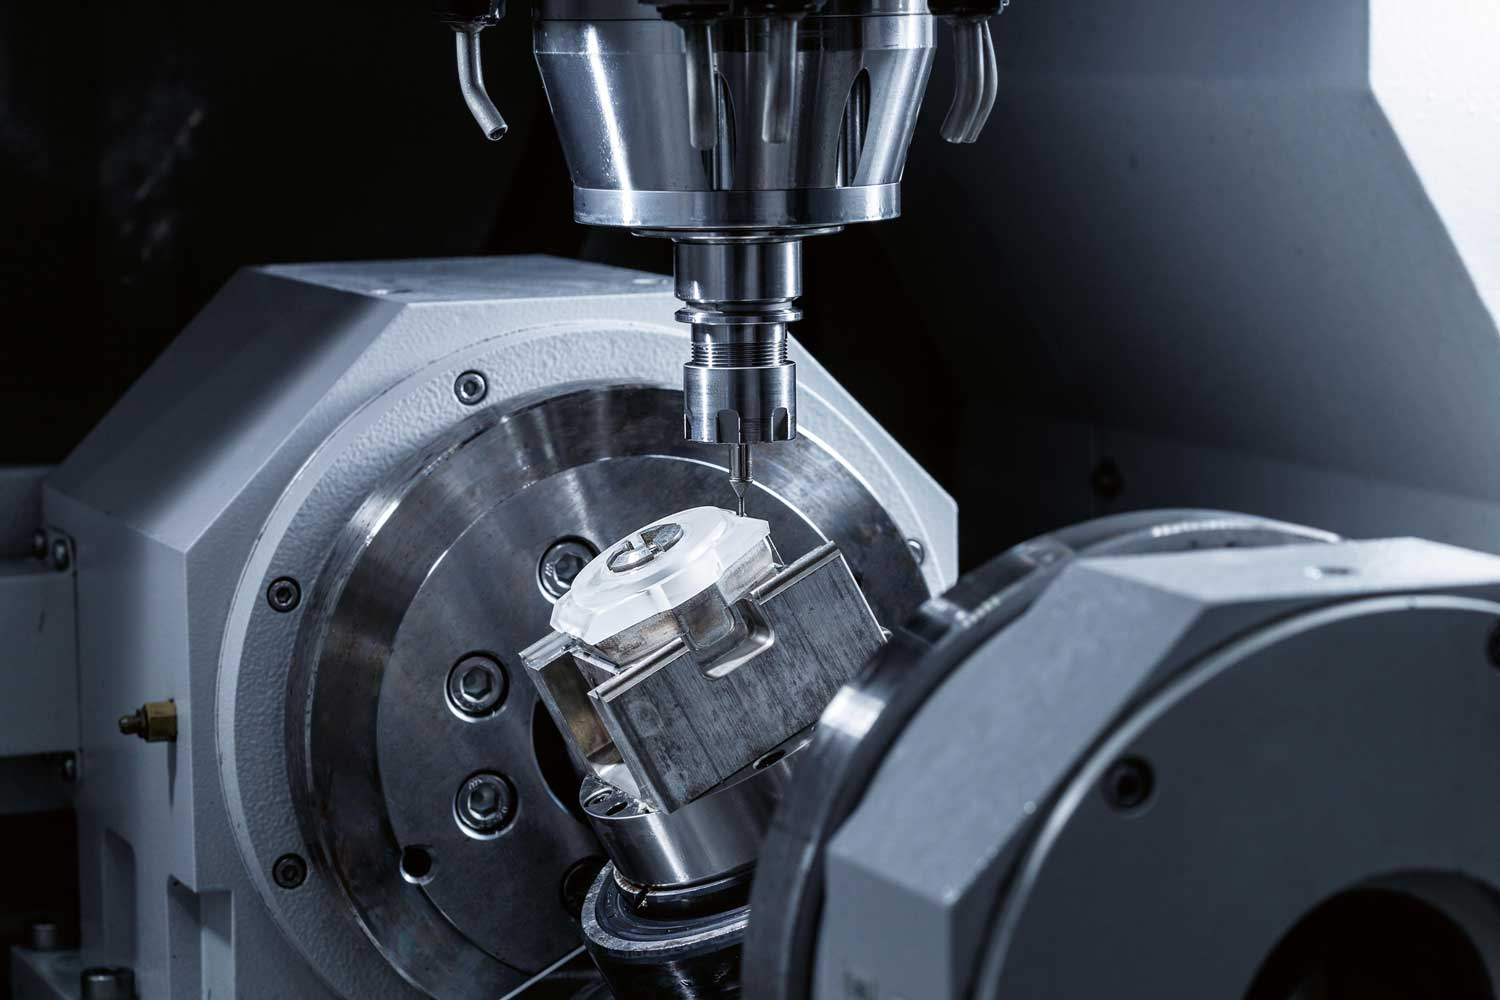 The machining of sapphire crystal cases is a time-consuming process